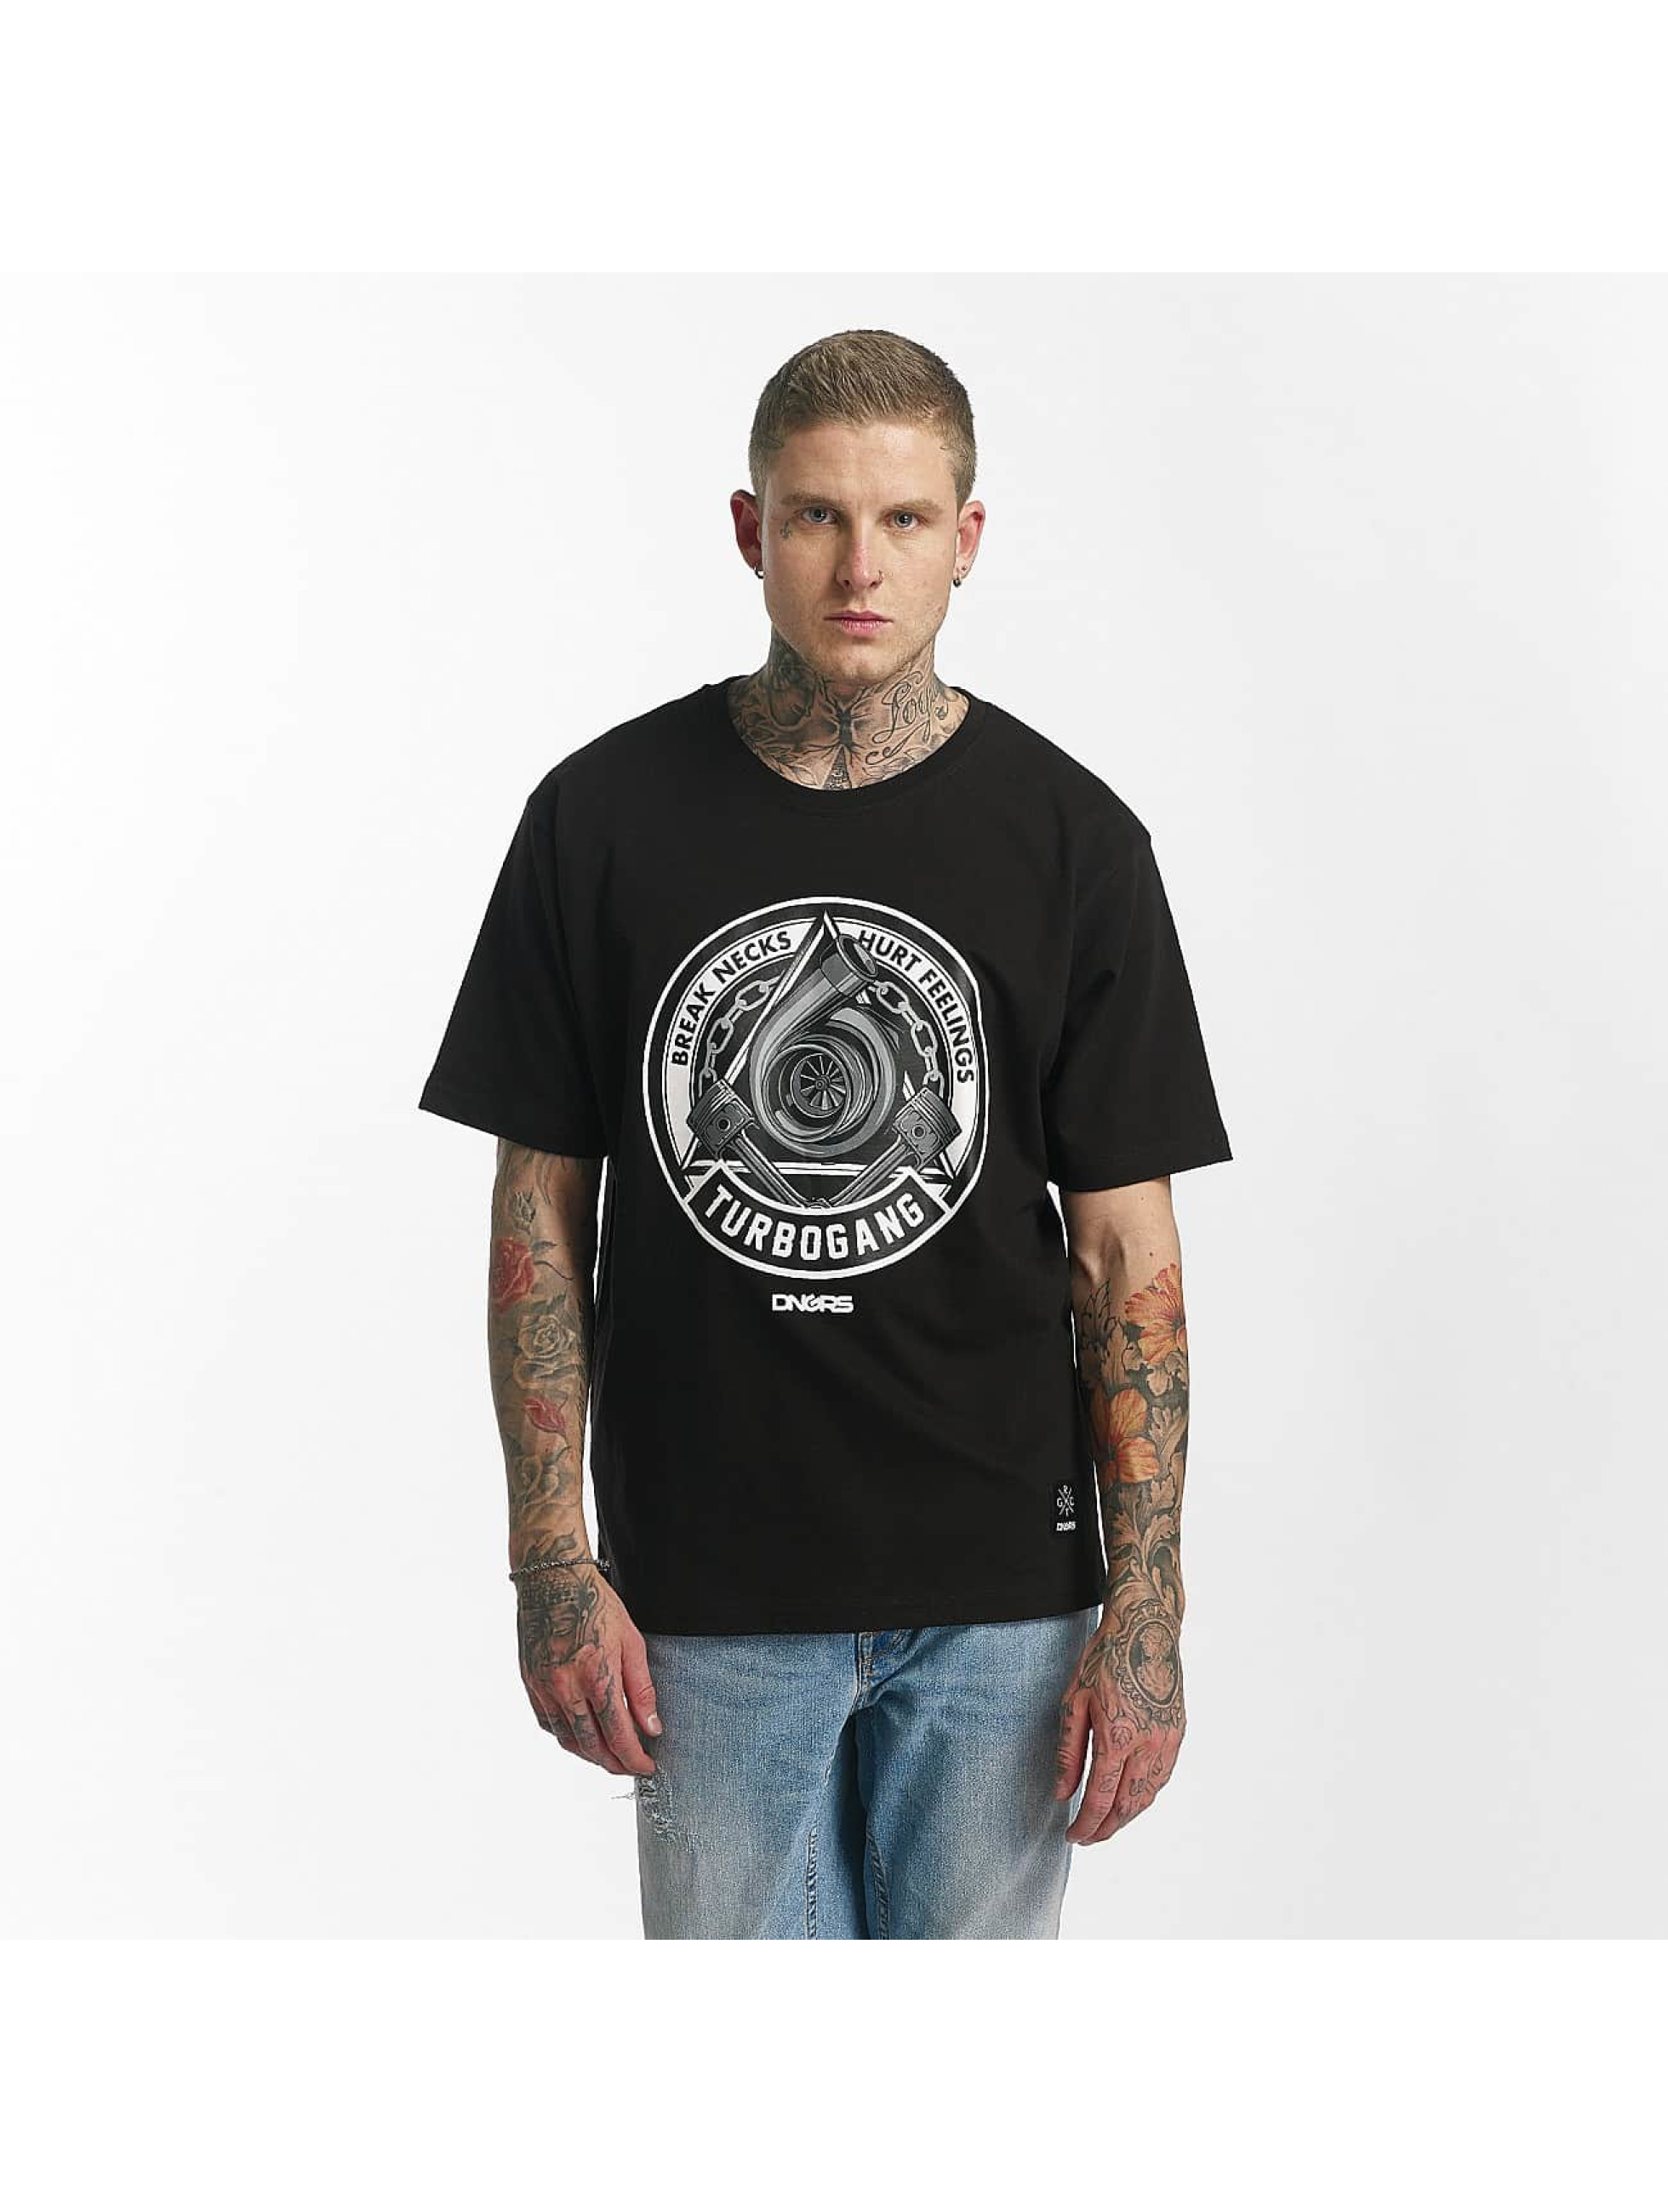 Dangerous DNGRS / T-Shirt Race City Illuminati in black 3XL